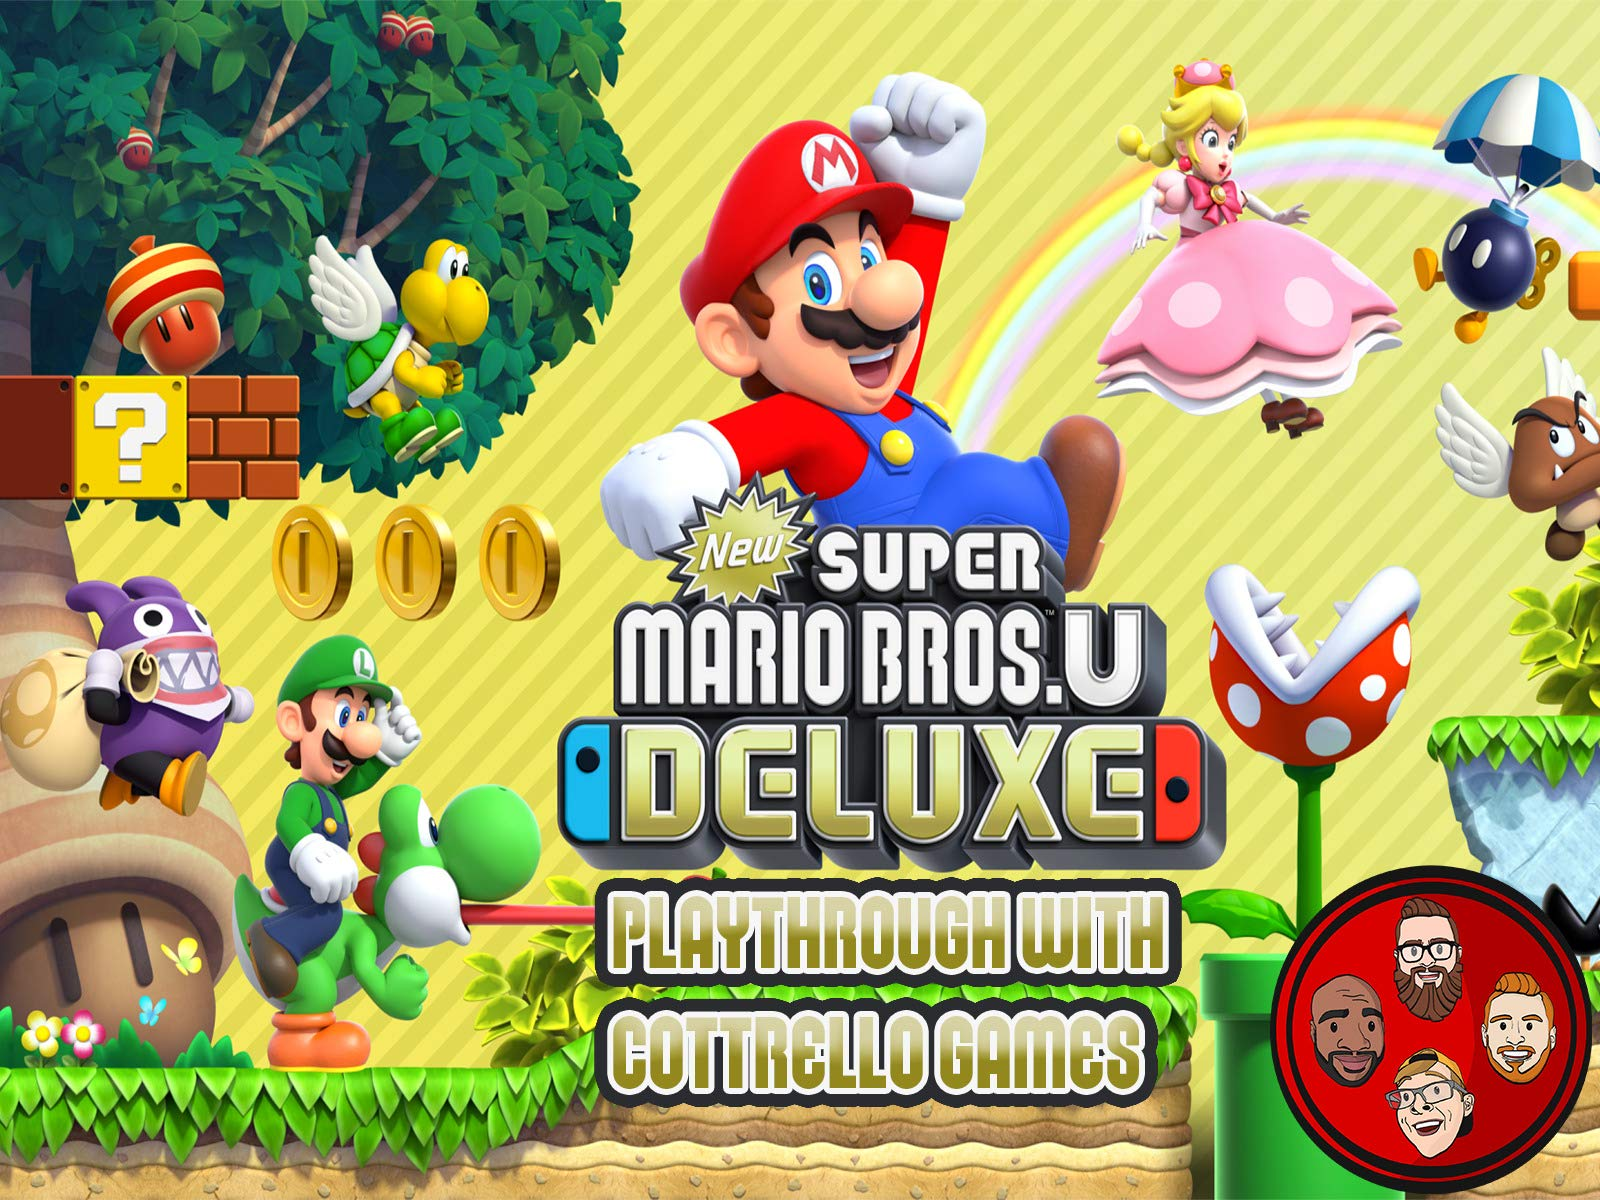 Clip: New Super Mario Bros. U Deluxe Multiplayer Playthrough with Cottrello Games - Season 1